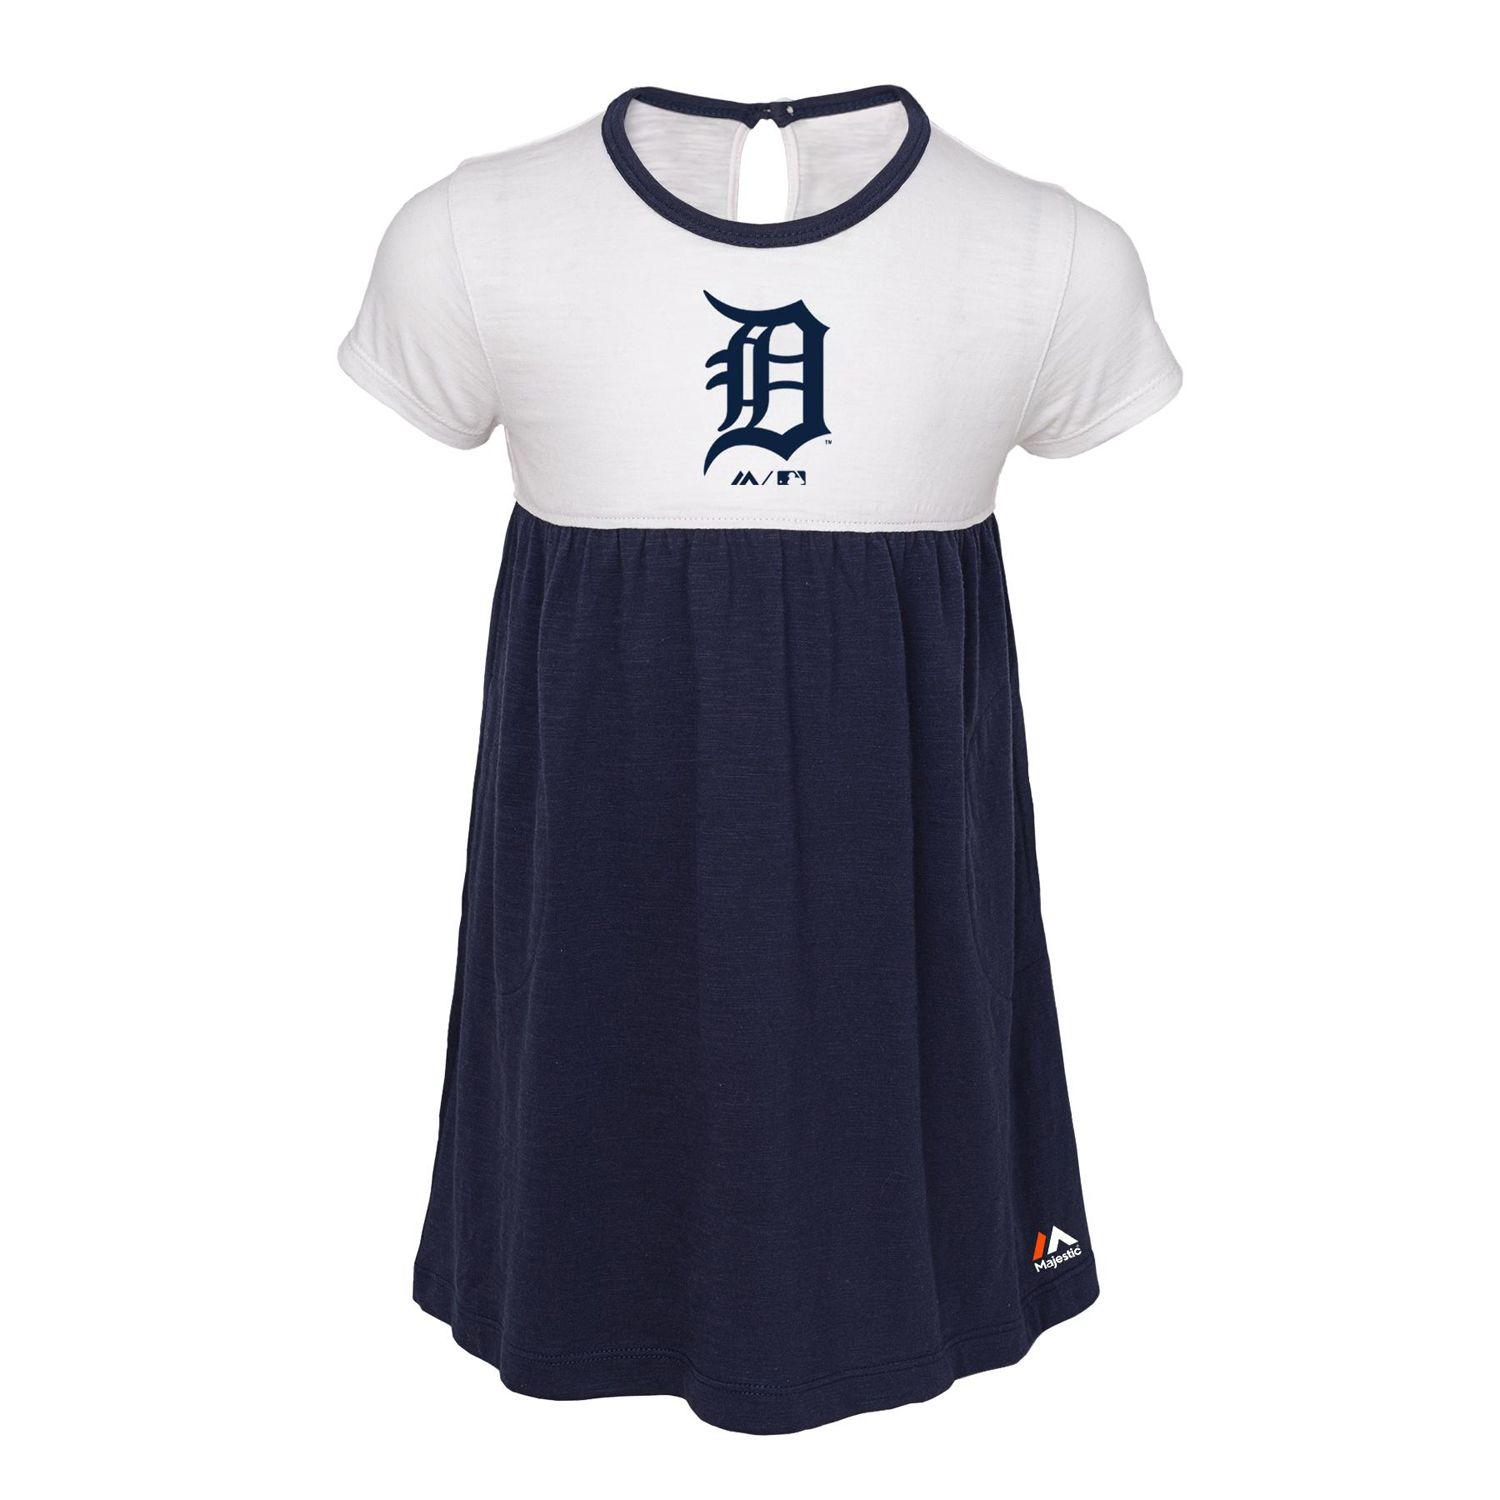 Toddler Girl Majestic Detroit Tigers 7th Inning Dress